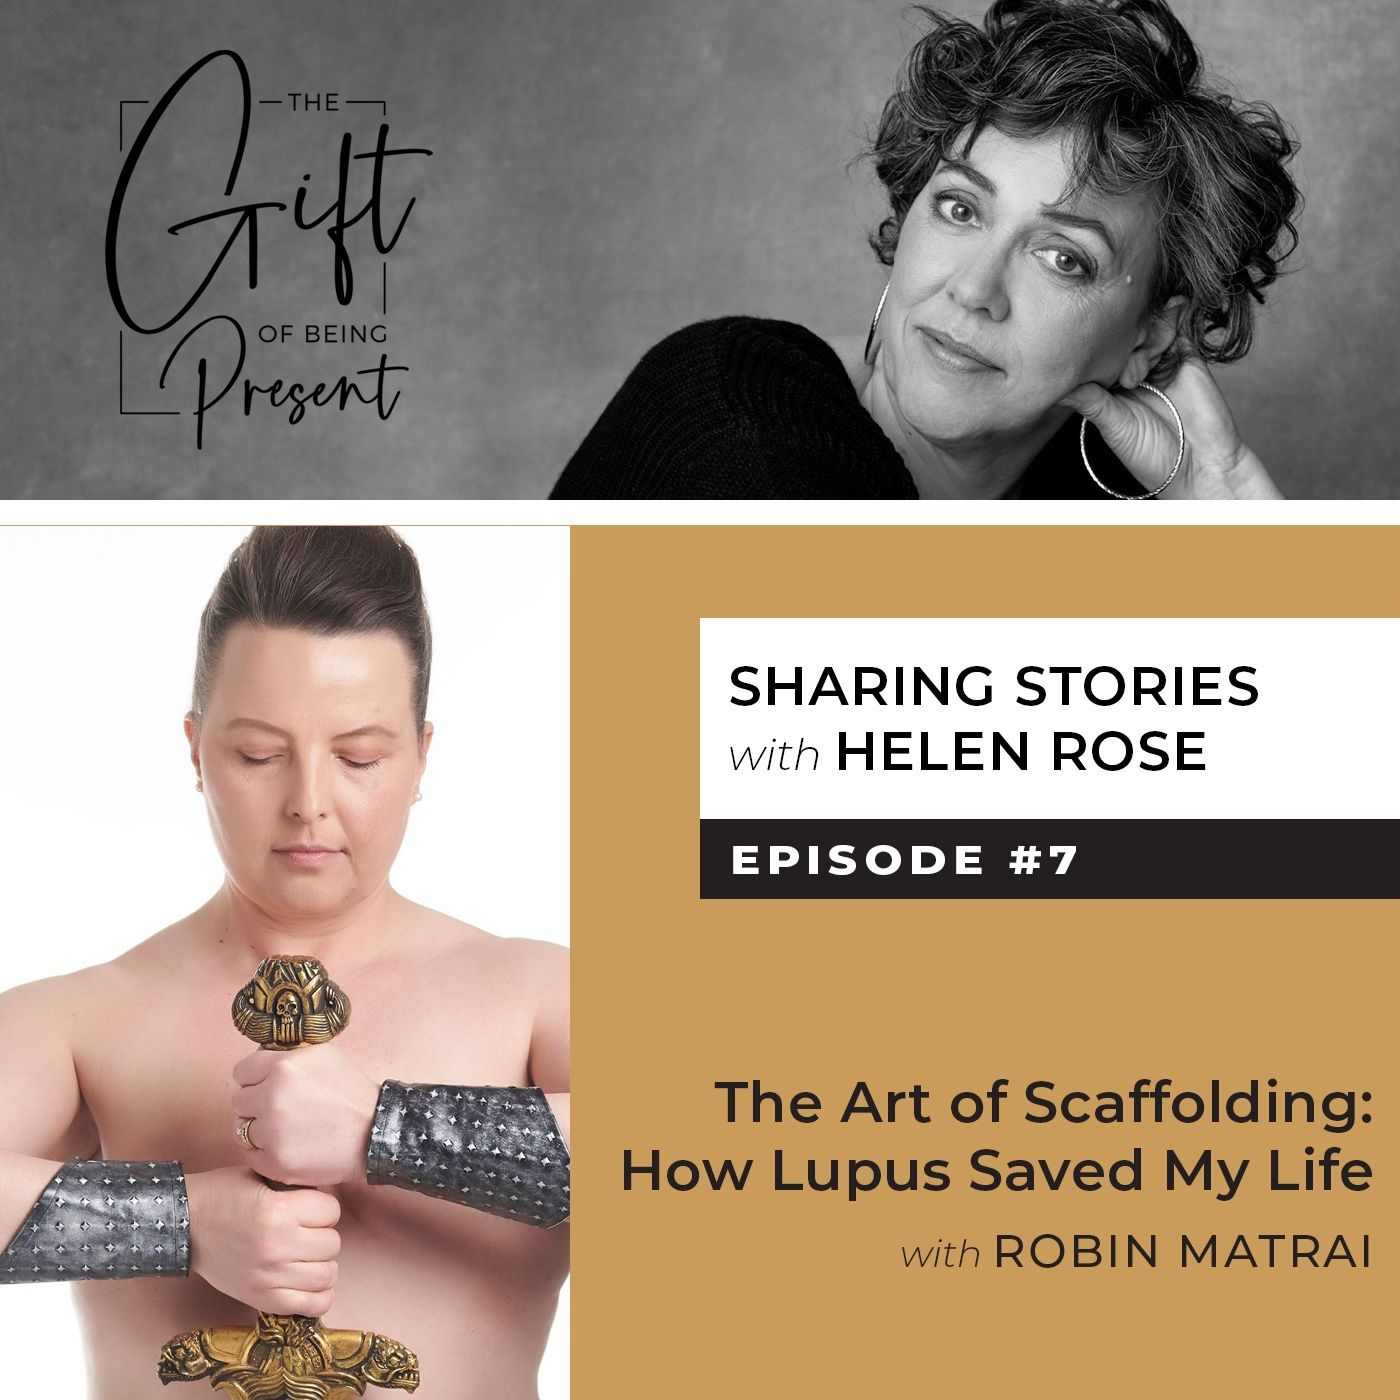 The Art of Scaffolding: How Lupus Saved My Life with Robin Matrai - Episode #7